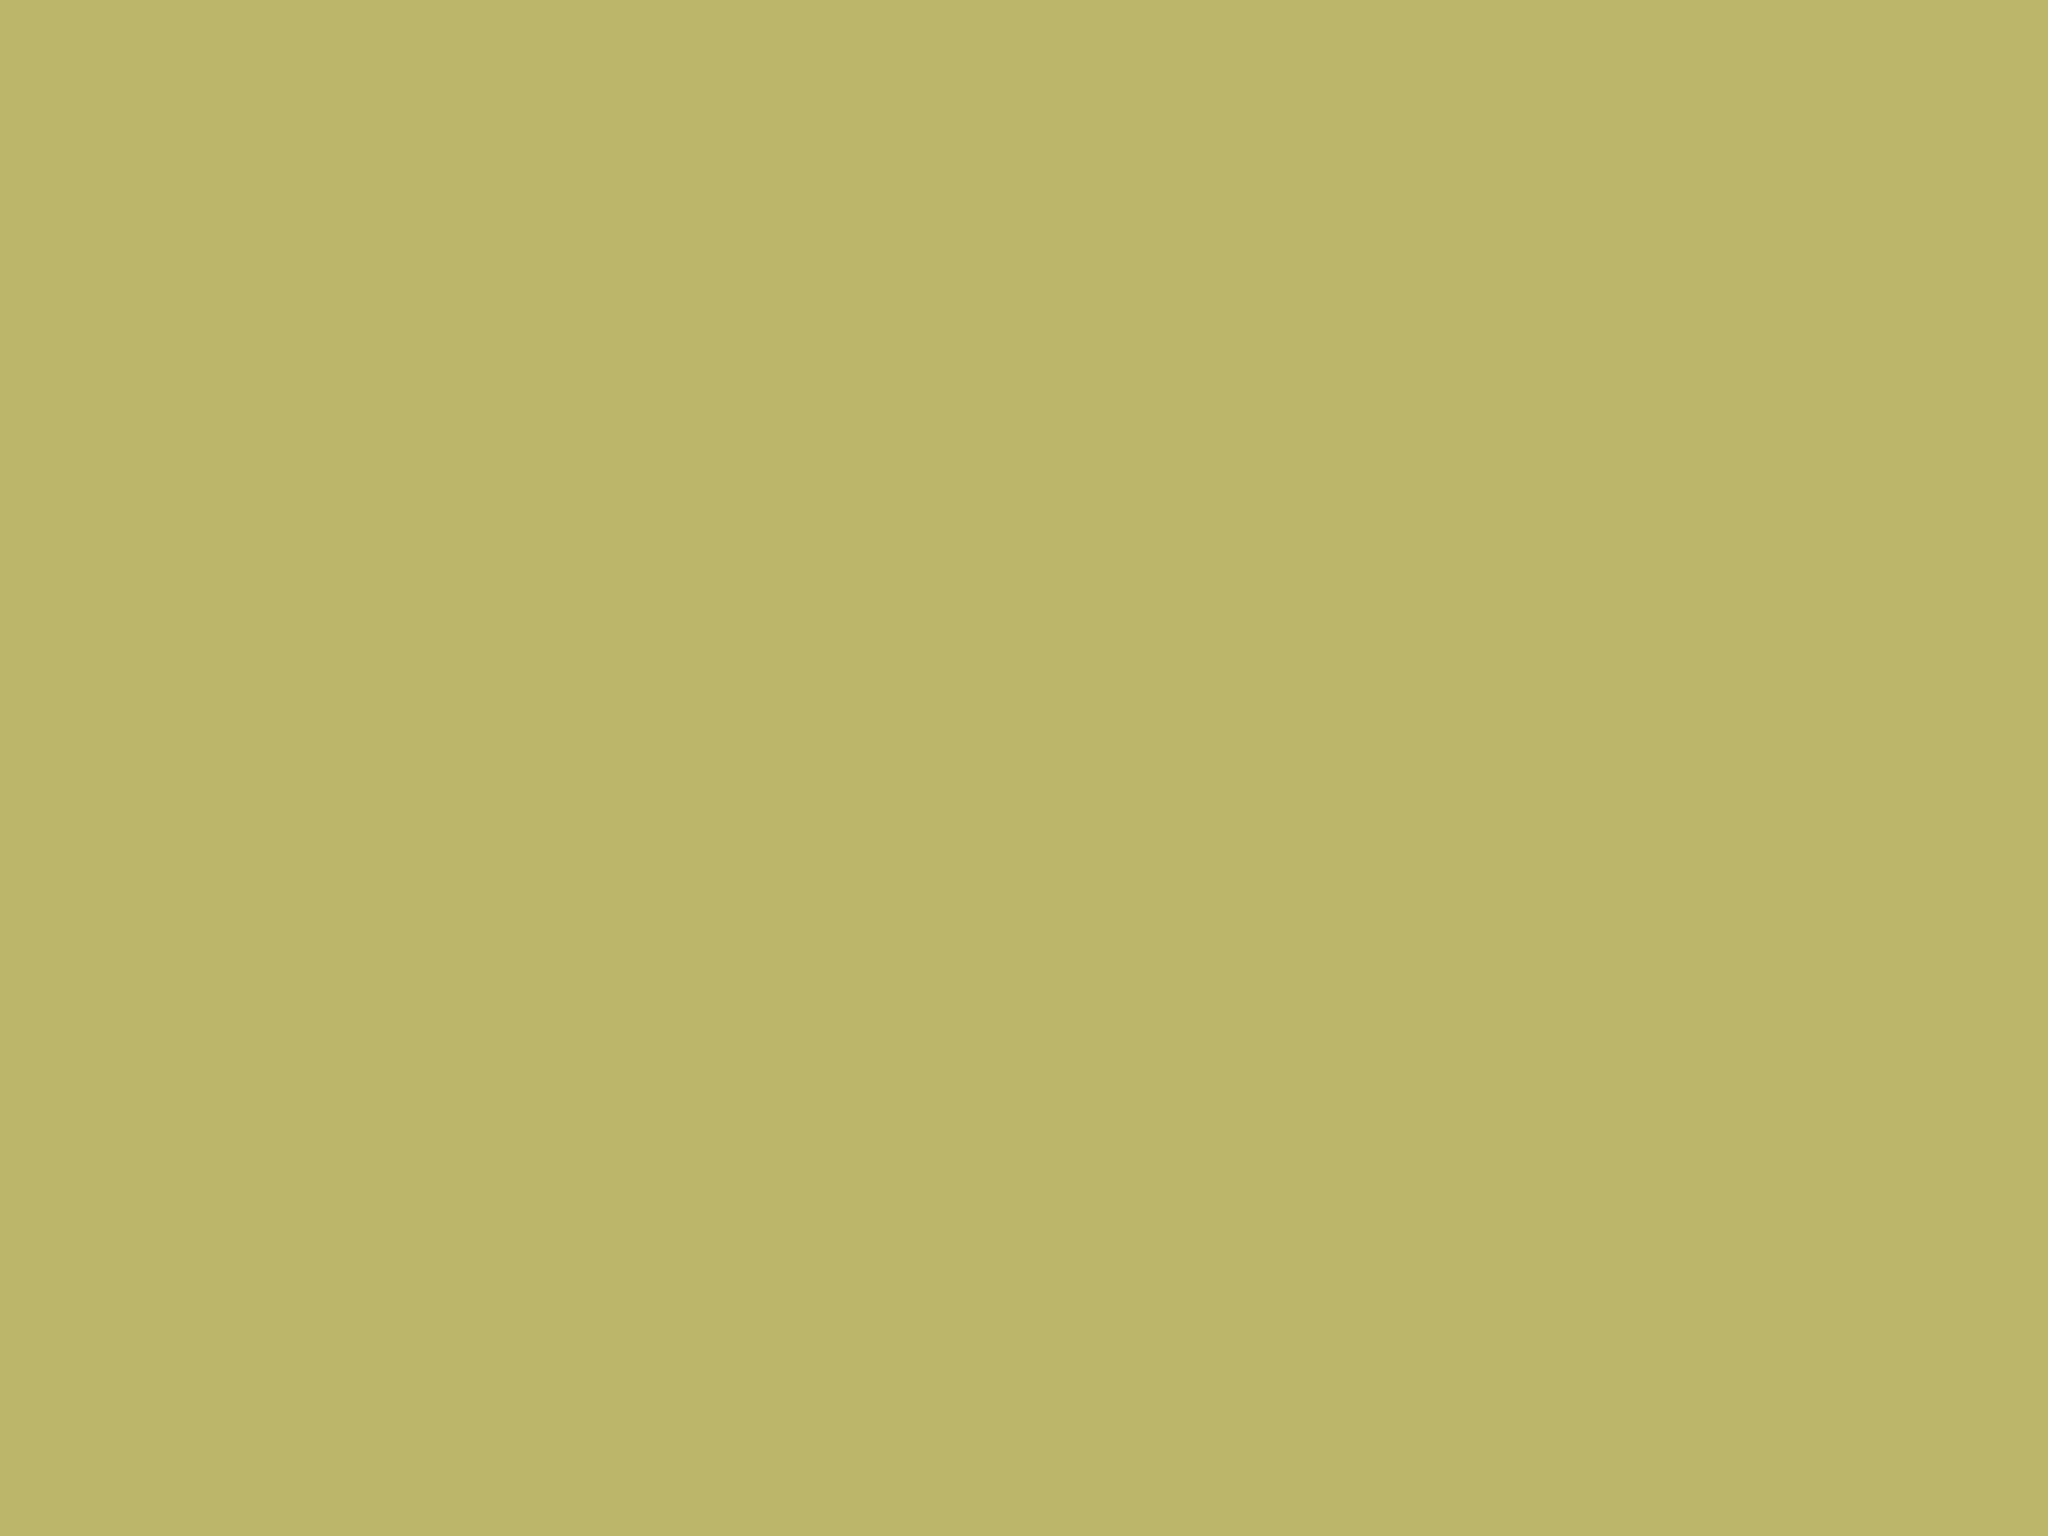 2048x1536 Dark Khaki Solid Color Background